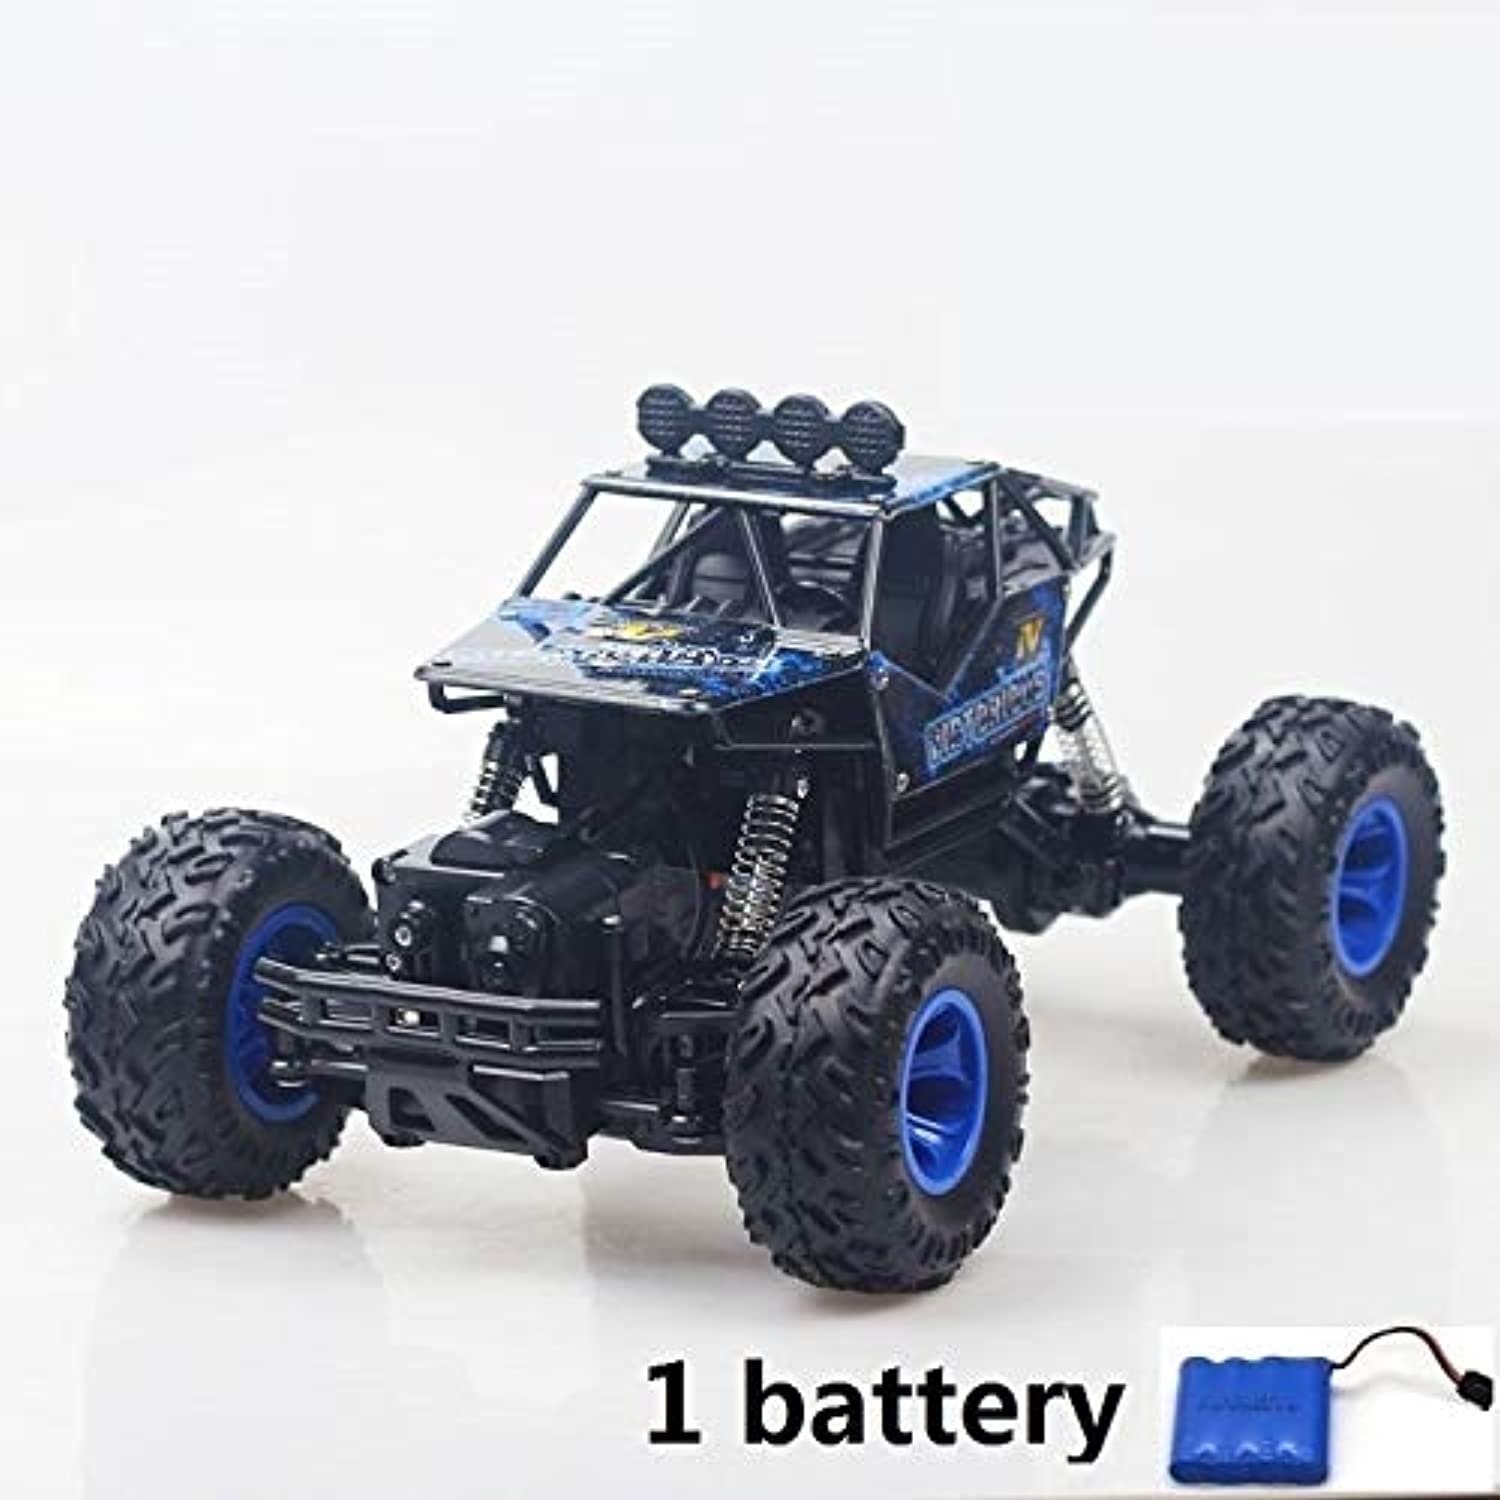 Generic 1 12 RC Car 4WD Climbing Car 4x4 Double Motors Drive Bigfoot Car Remote Control Model OffRoad Vehicle oys for Boys Kids 28cm 1 Battery bluee